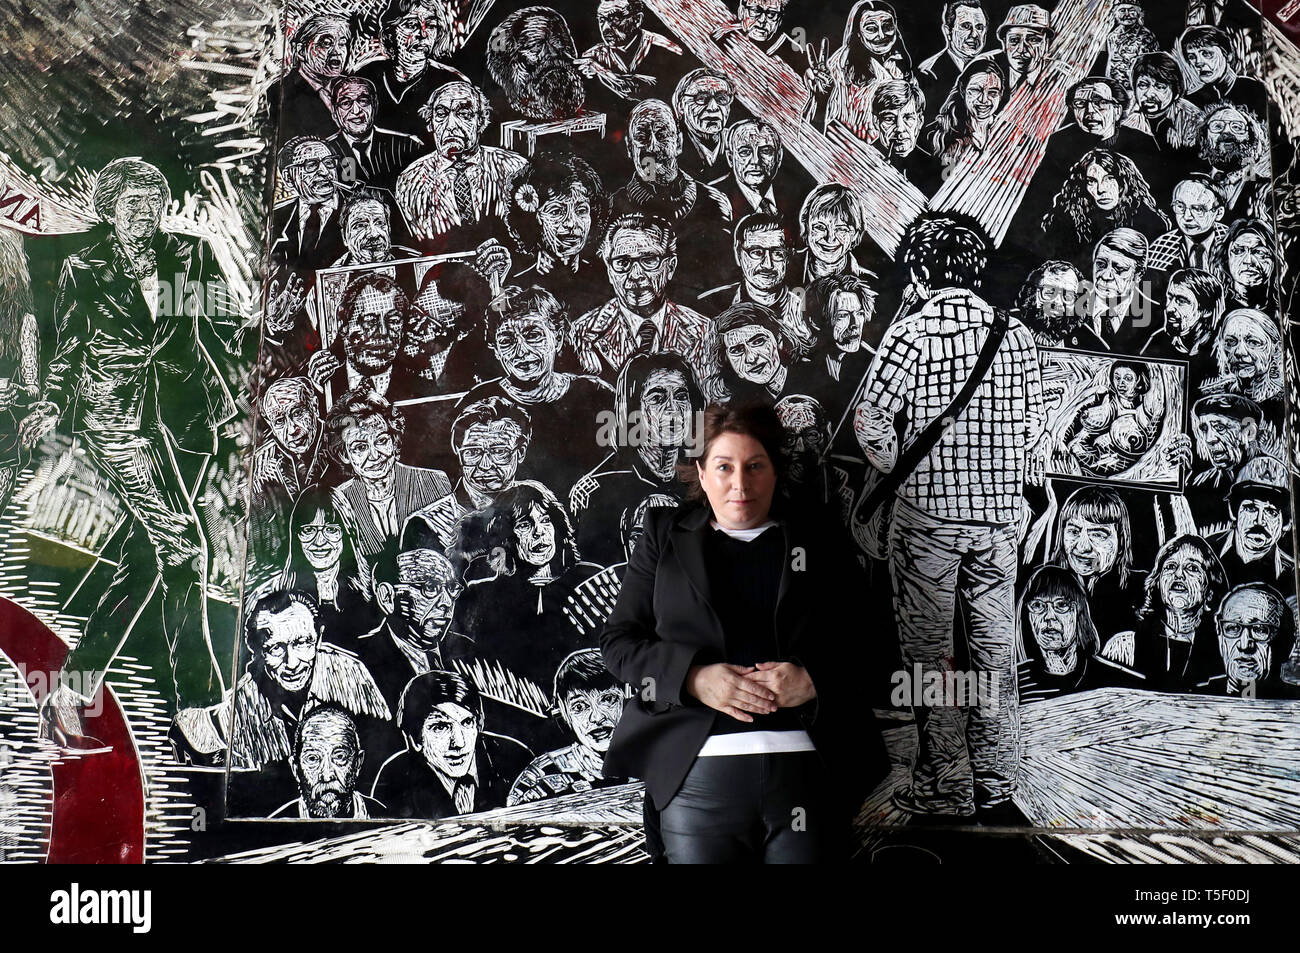 Chief executive Shan Edwards is surrounded by a large scale work by printmaker Thomas Kilpper titled 'The Politics of Heritage' which is carved directly into the rubber floor of the gallery and covers the wall and ceiling. - Stock Image